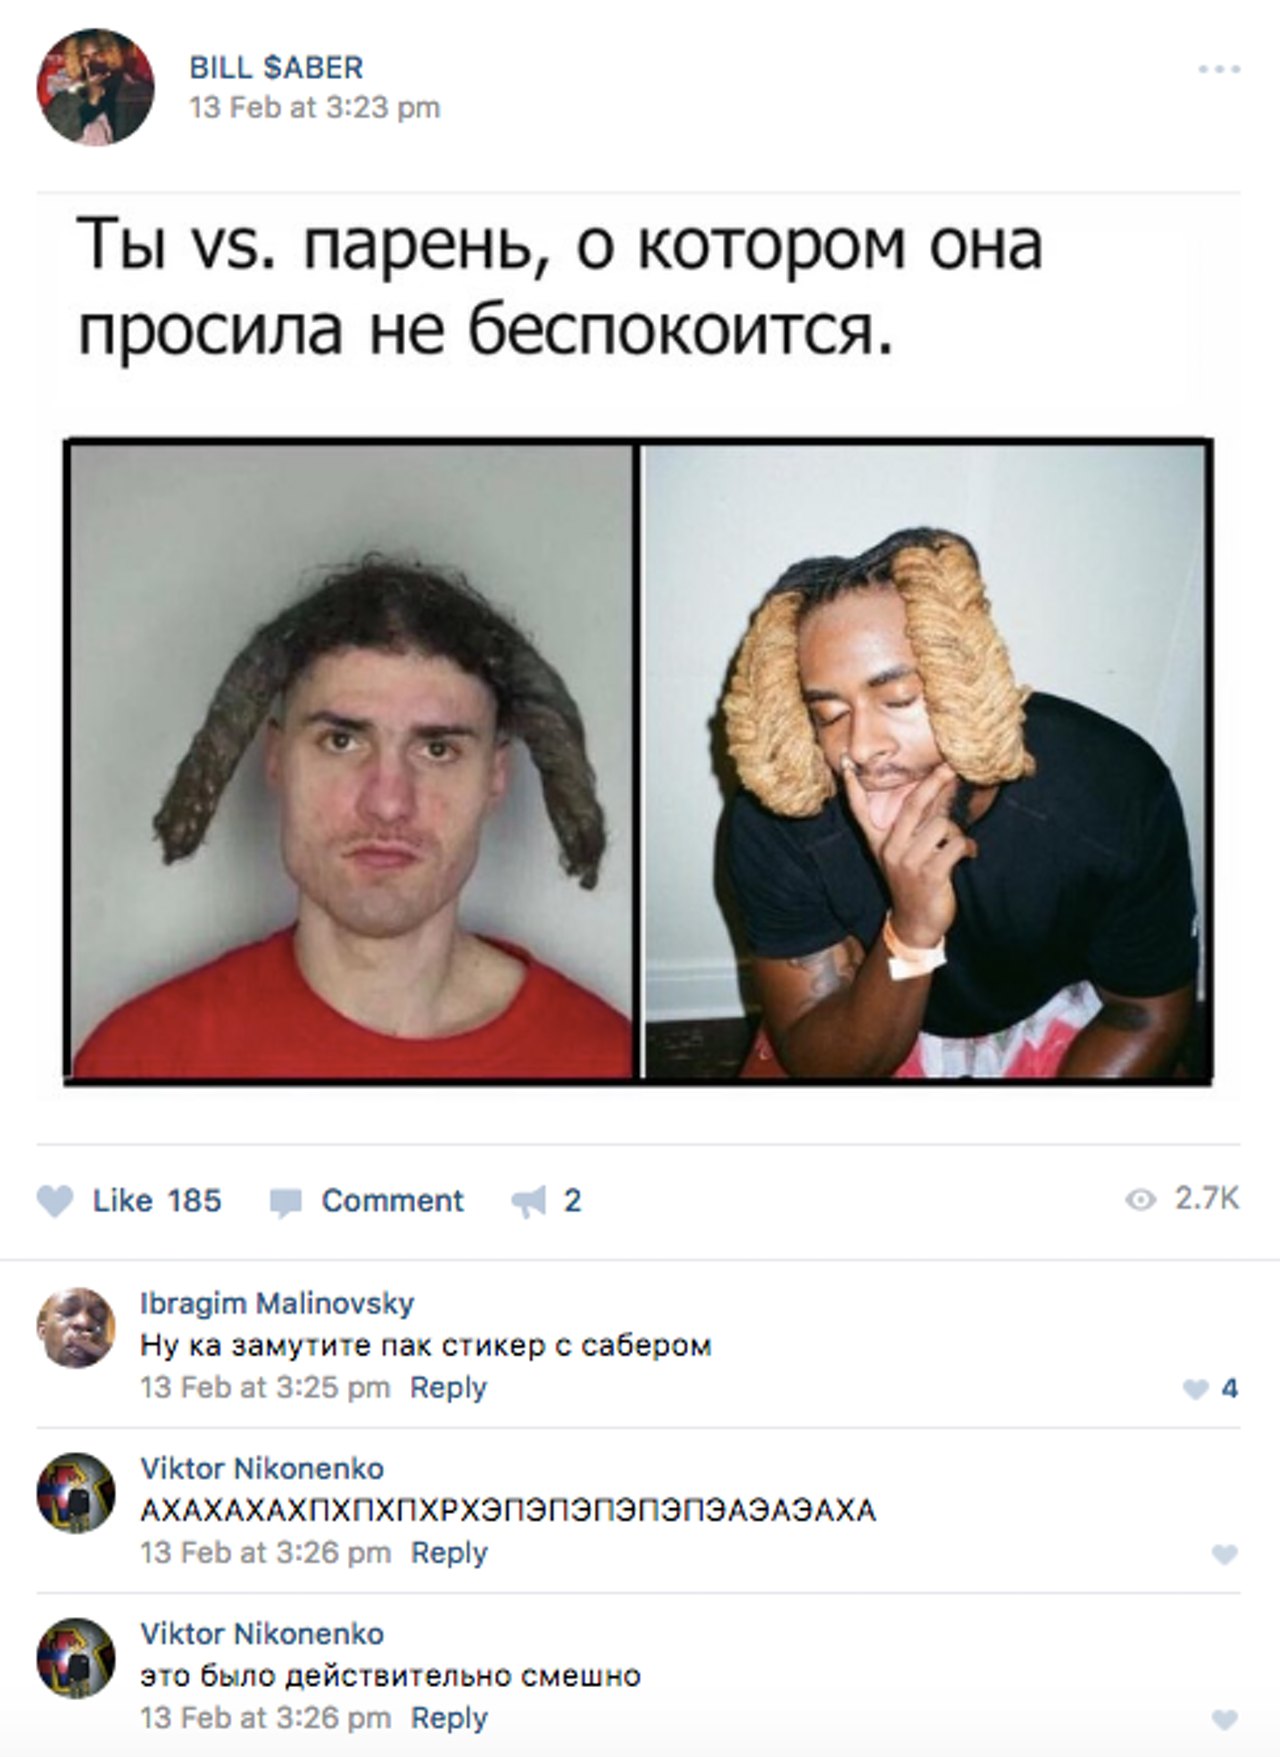 Buffalo rapper Bill $aber posts a Russian meme of himself on his VK page.